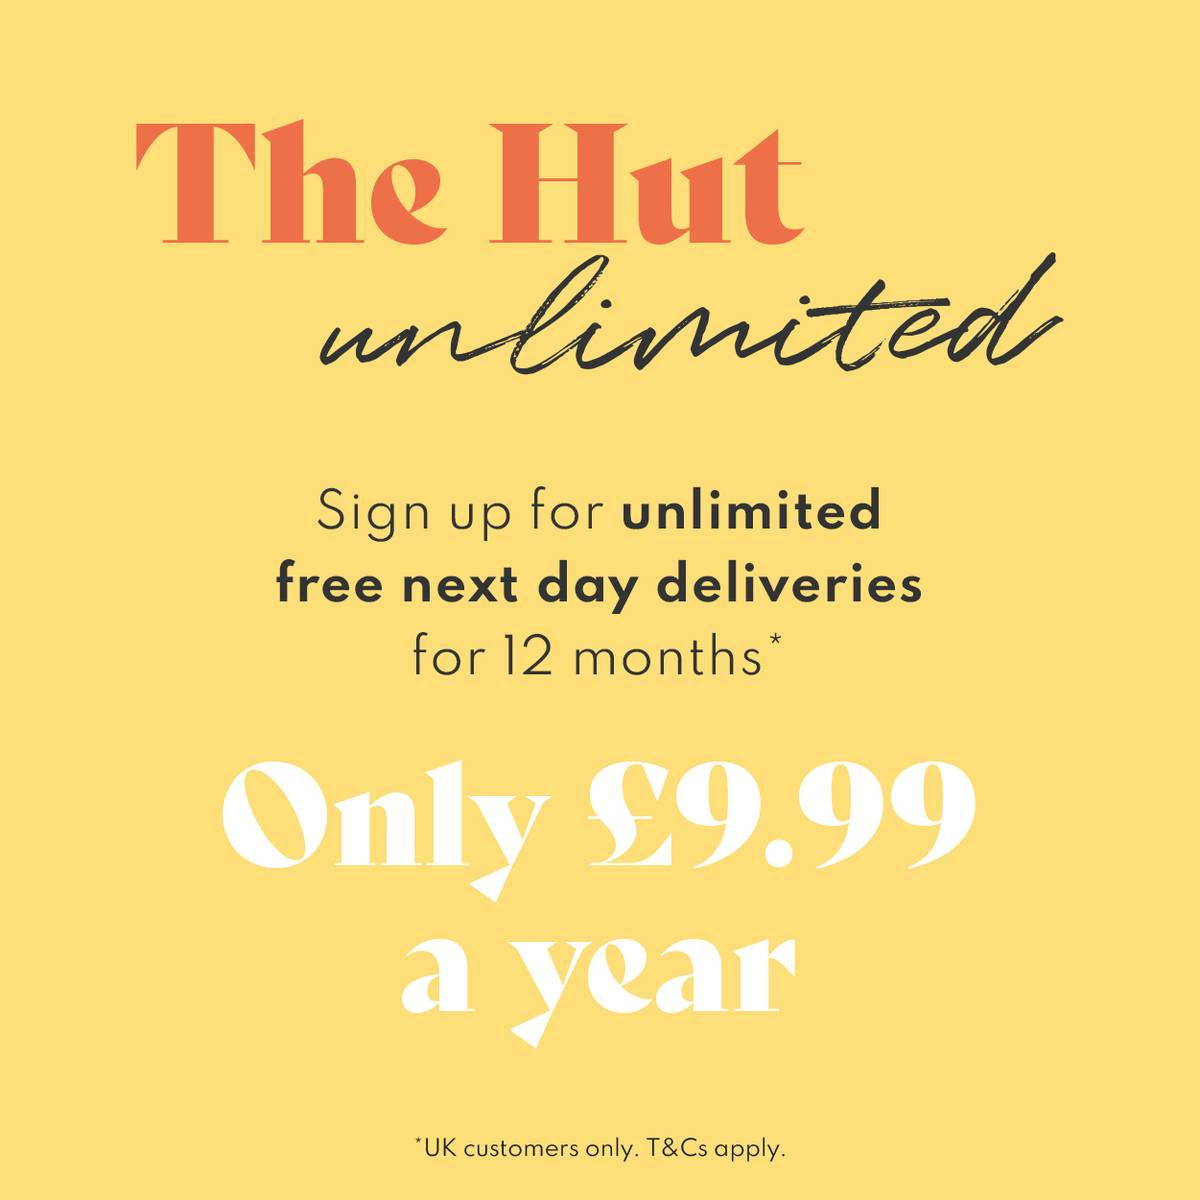 The Hut Unlimited - Sign up for unlimited next day deliveries for 12 months for only £9.99. Available to UK customers only.